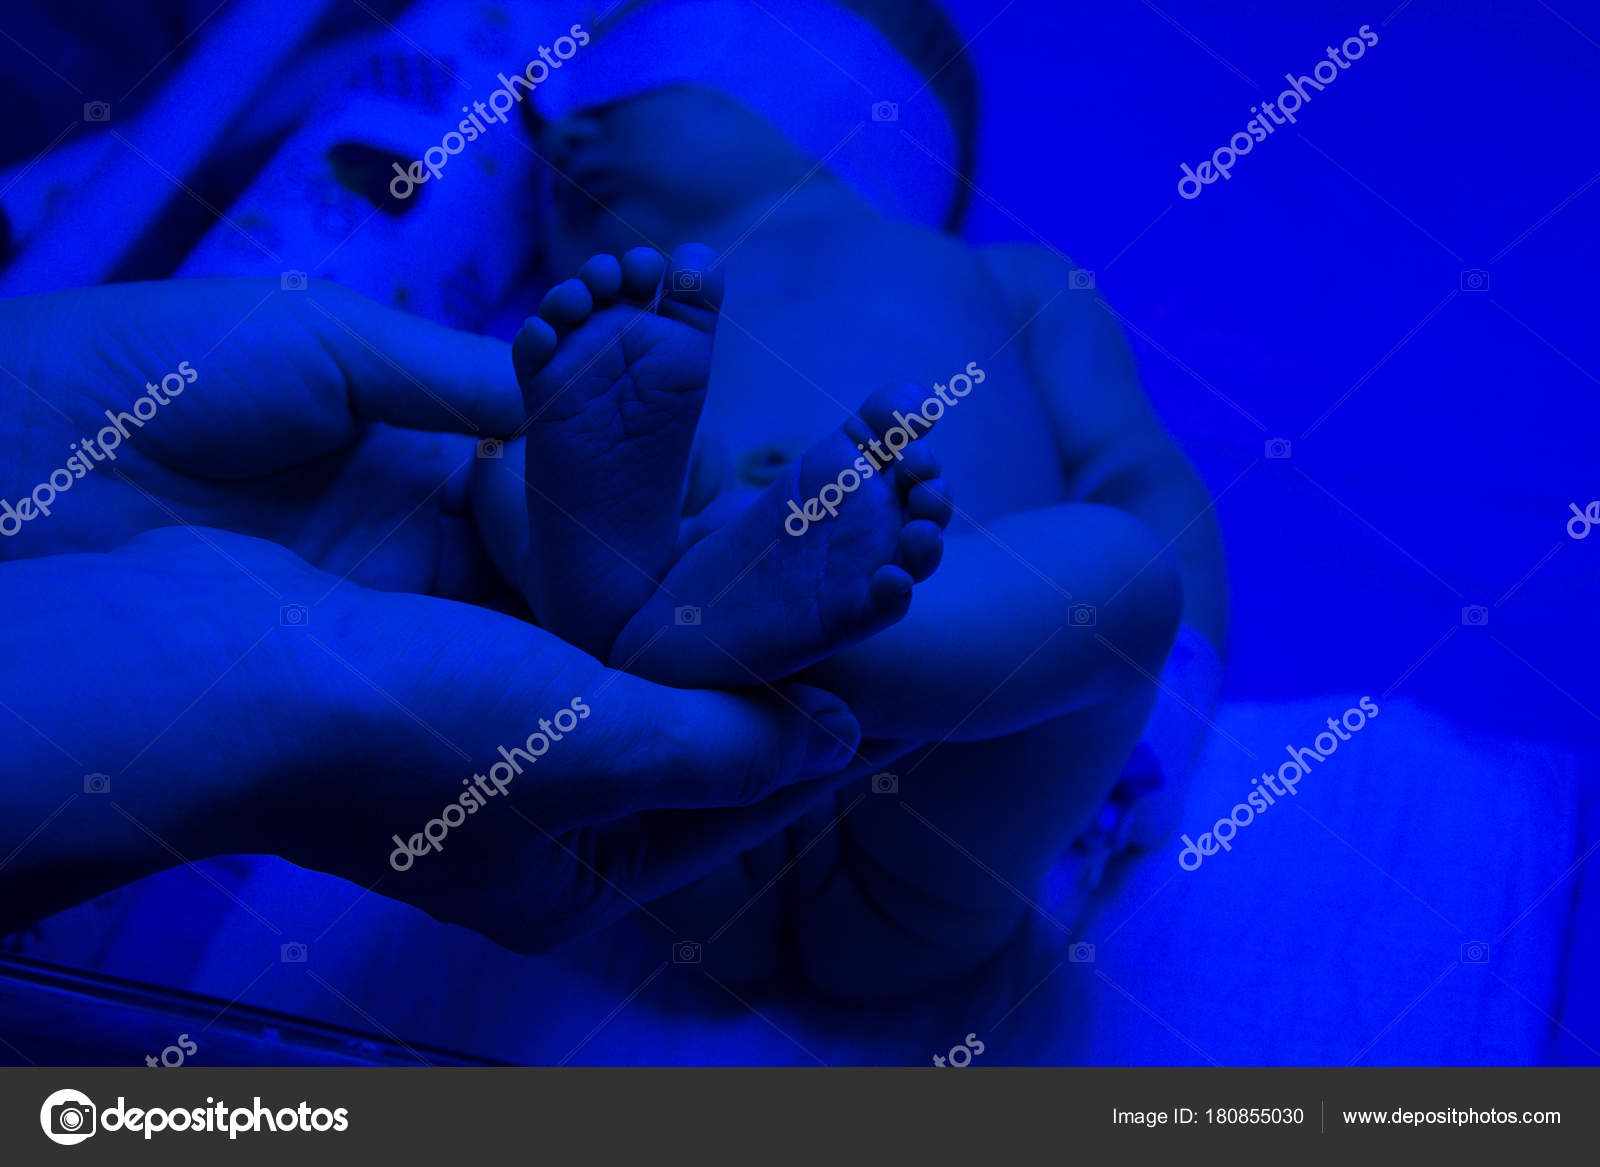 Newborn Babies Jaundice Treatment Newborn Child Baby Having A Treatment For Jaundice Under